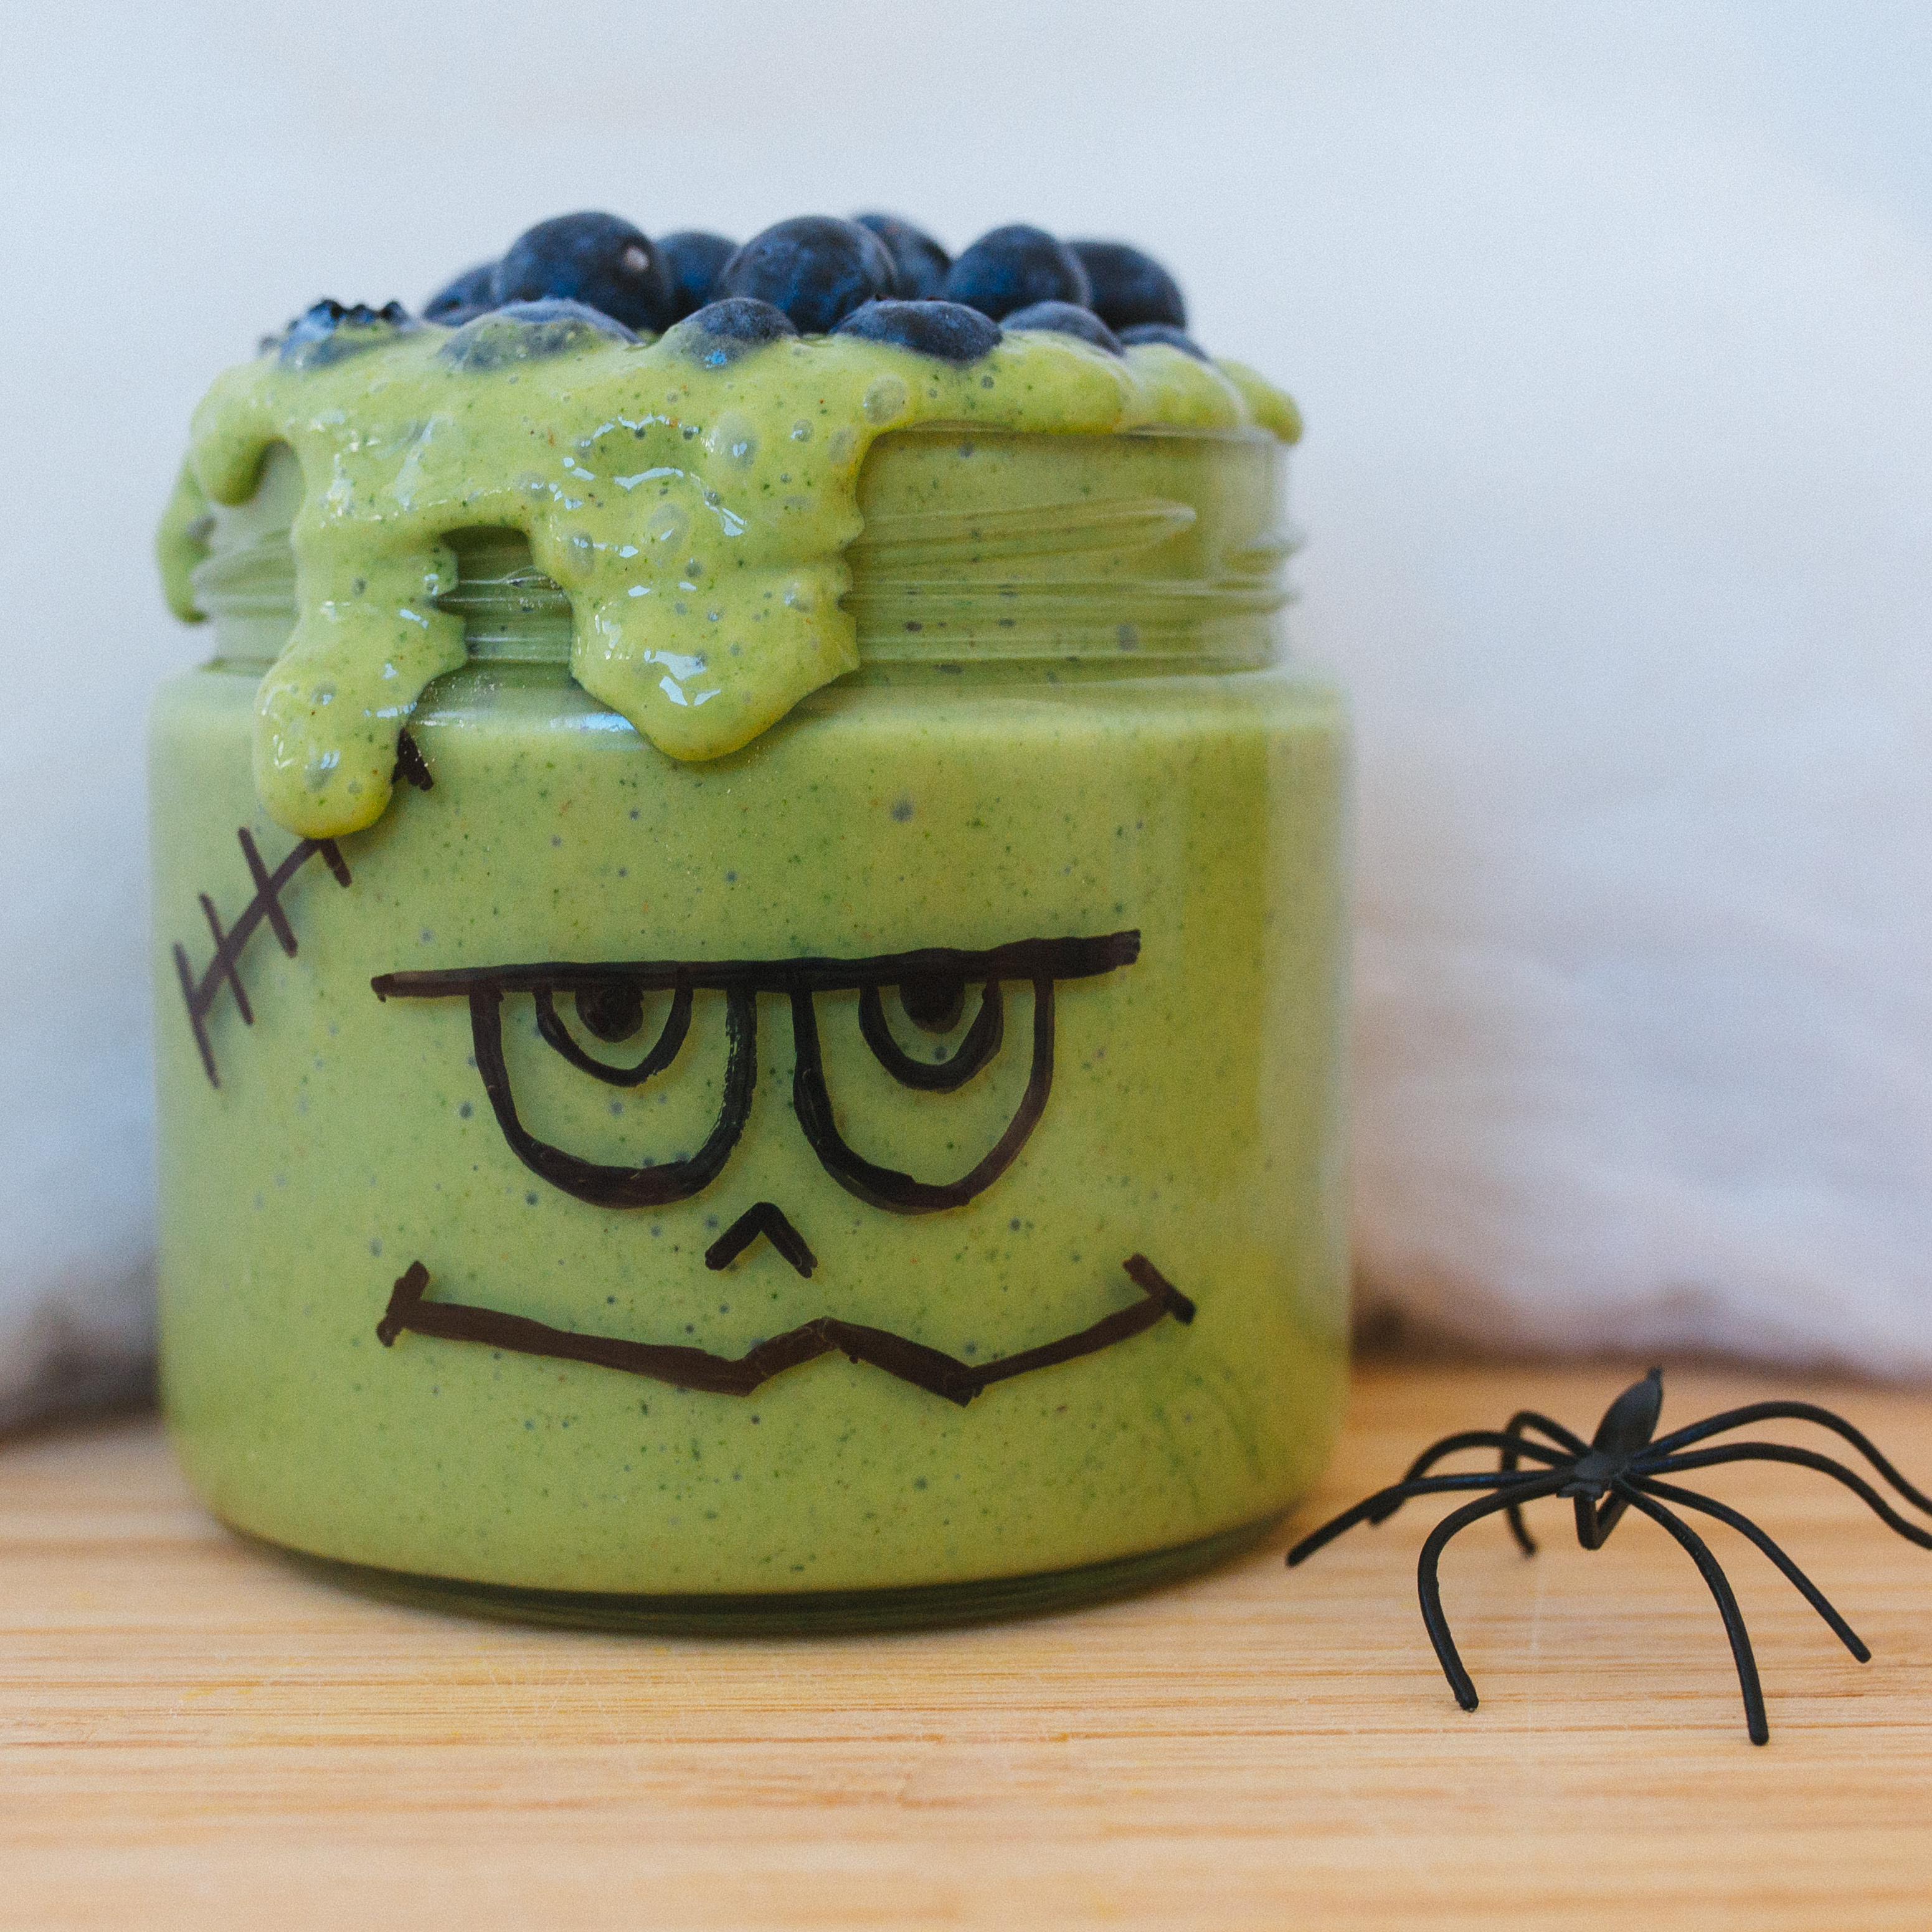 Looking for spook-tacular Halloween drinks? Our Shakeology smoothies are getting in on the haunted holiday fun with ghoulish costumes of their own, like this Frankenstein smoothie.